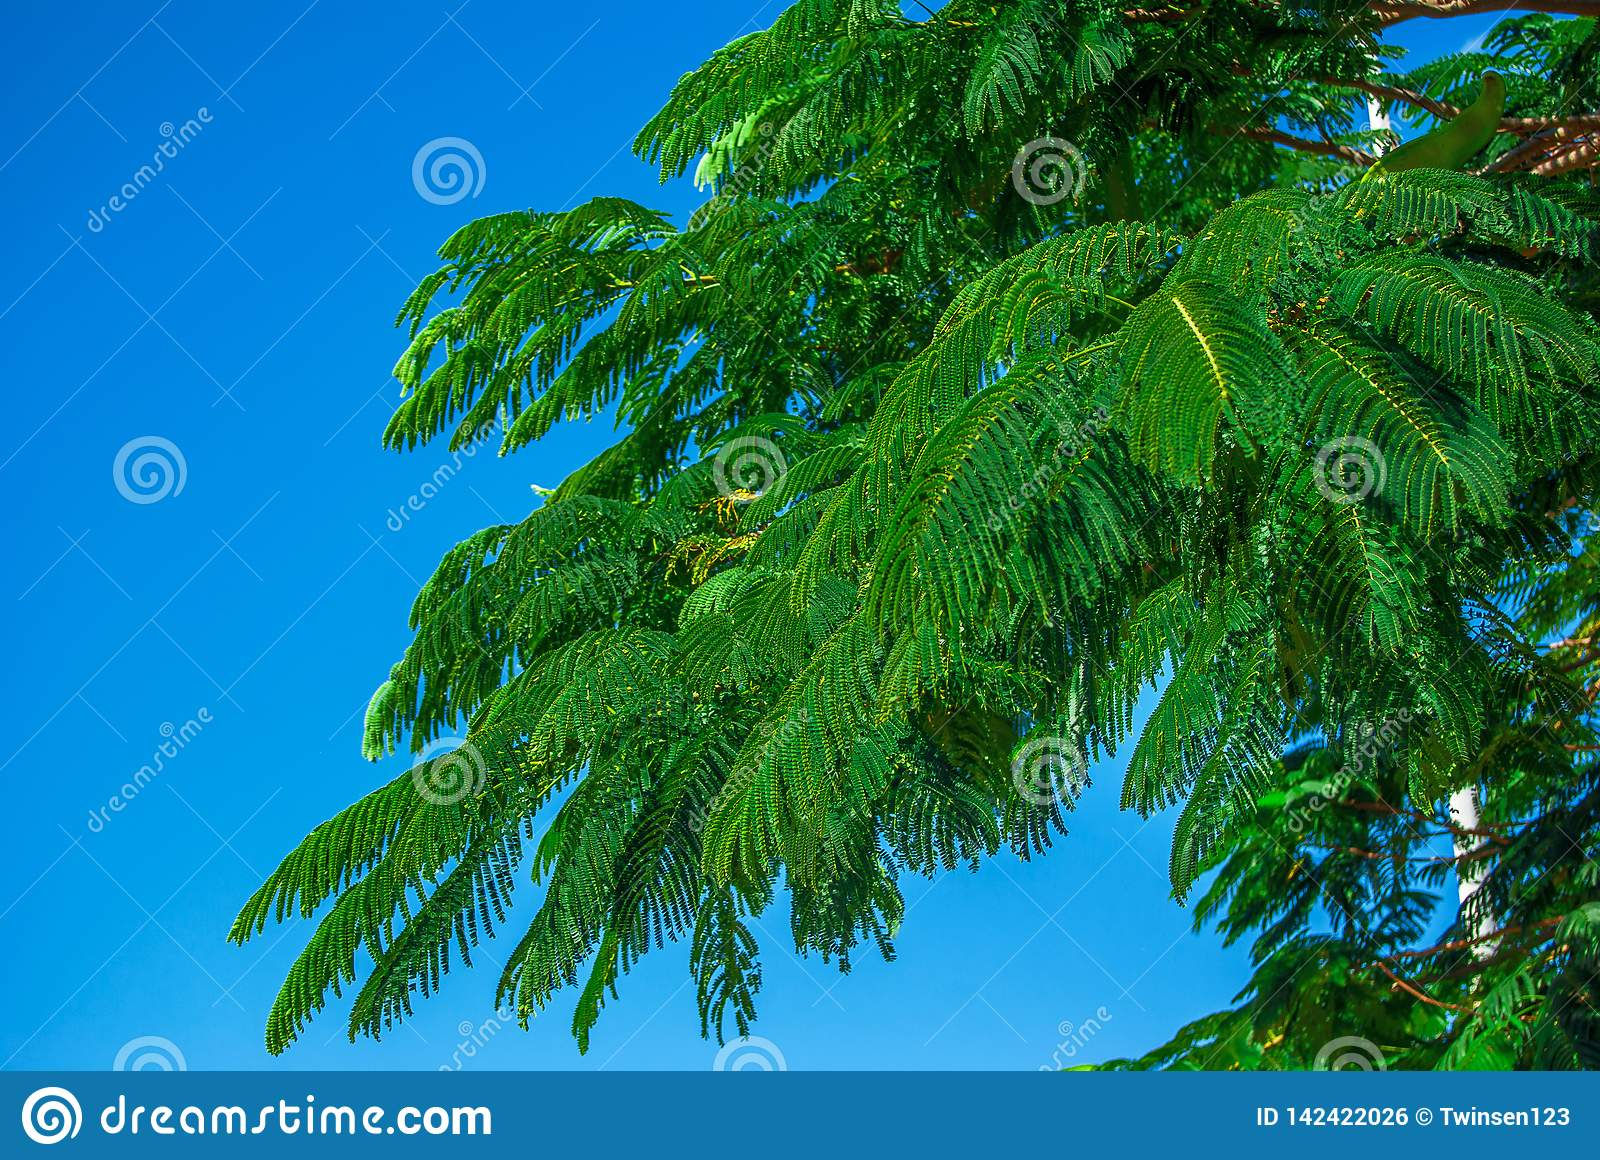 Branches Of Acacia On The Background Of Blue Sky Summer Background Nature Environmental Protection Stock Photo Image Of Beautiful Leaf 142422026 Thousands of new background images added every day. dreamstime com